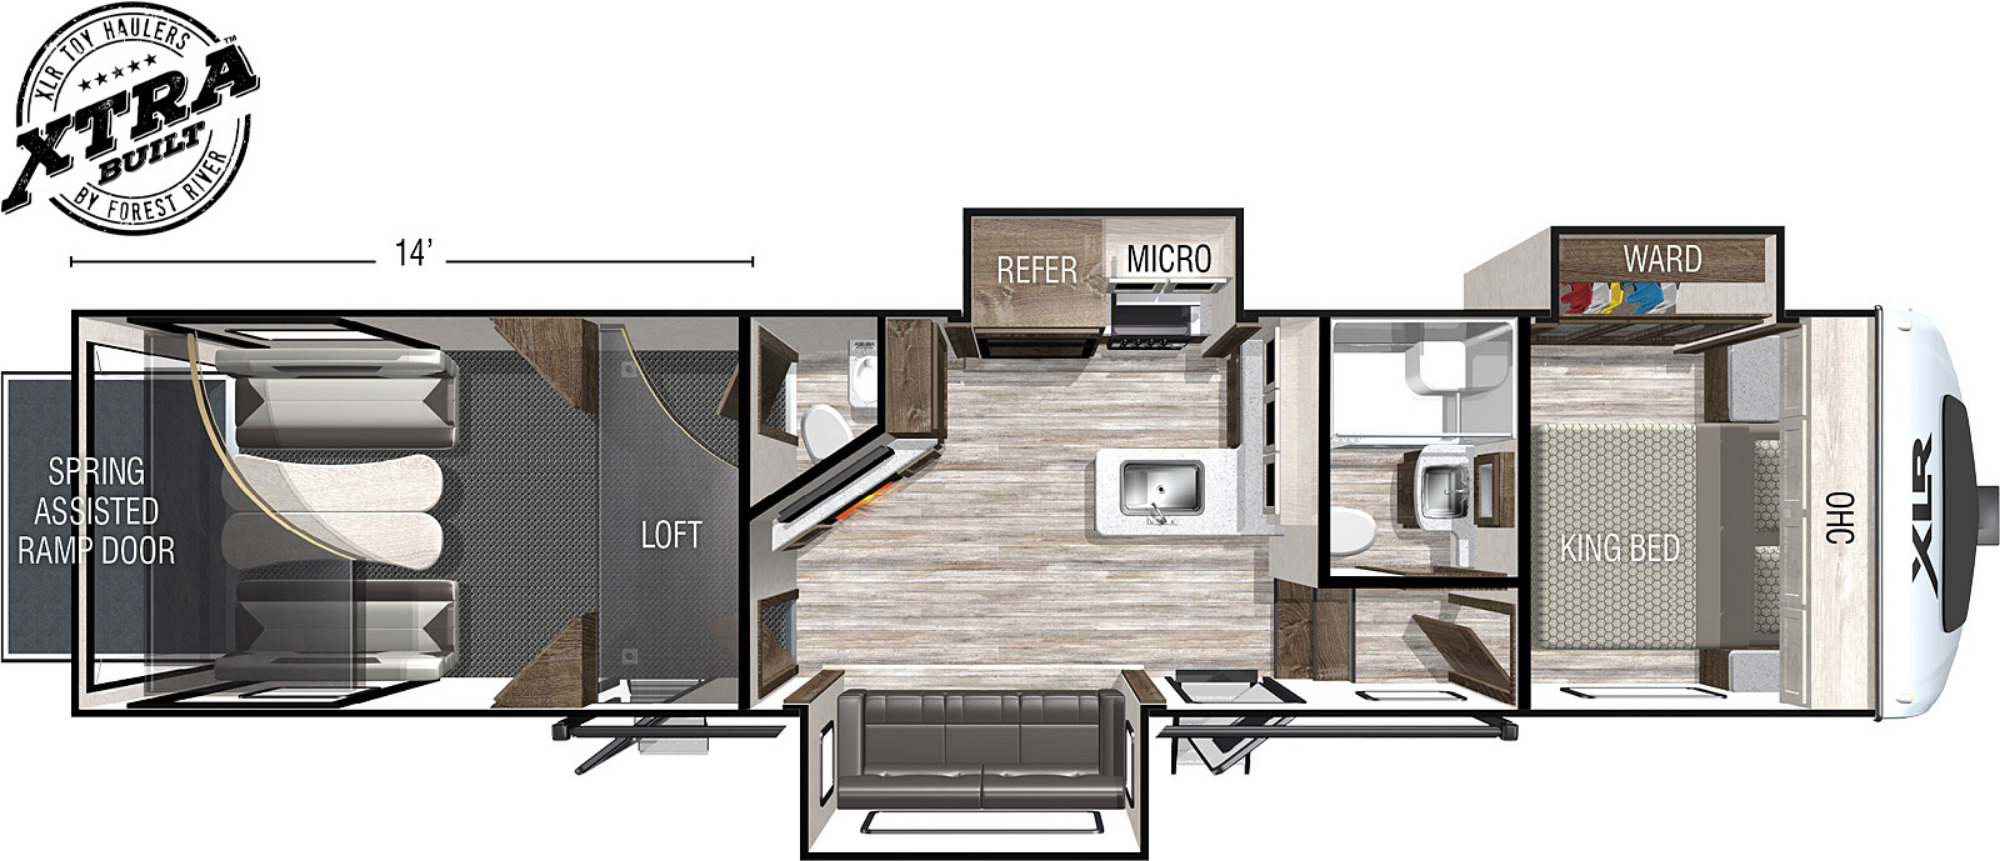 View Floor Plan for 2022 FOREST RIVER XLR NITRO 351